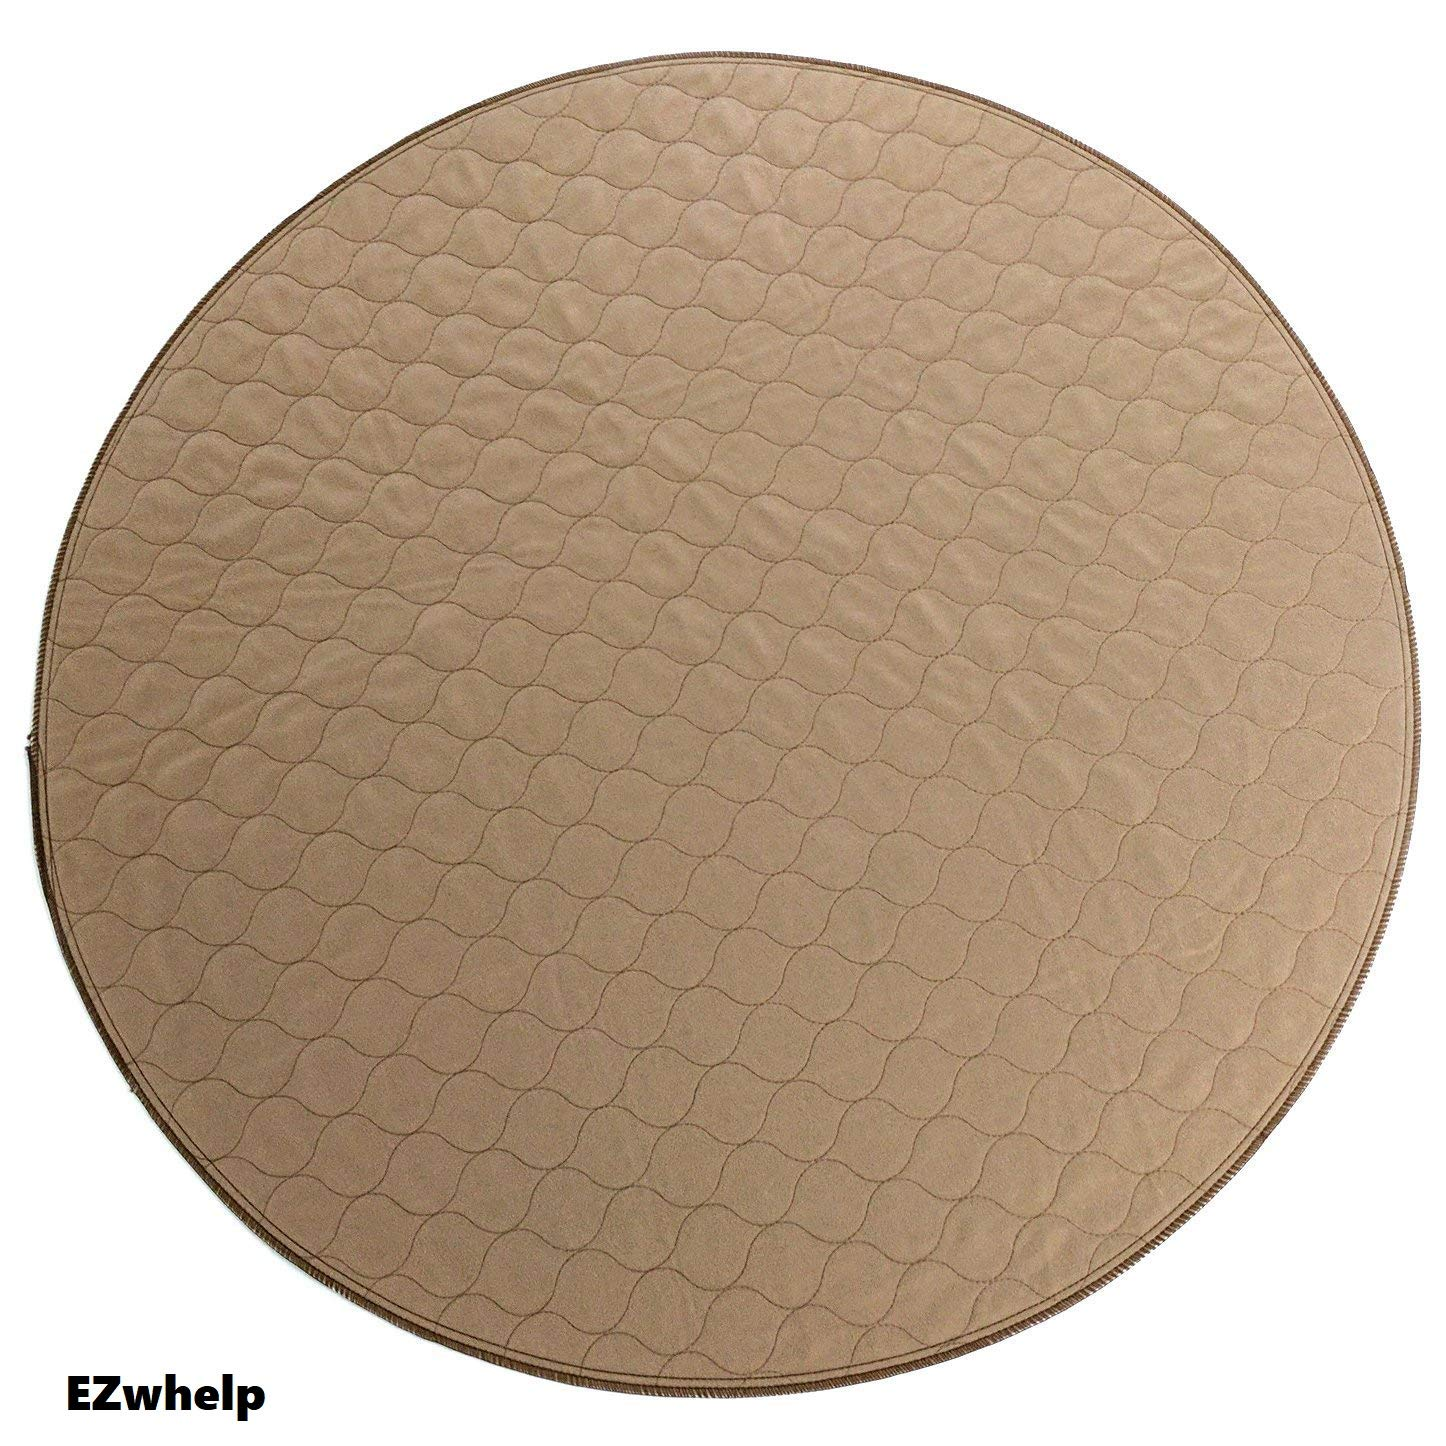 EZwhelp 48'' (Round, Circular Shape) Machine Washable, Reusable Pee Pad/Quilted, Fast Absorbing Dog Whelping Pad/Waterproof Puppy Training Pad/Housebreaking Absorption Pads by EZwhelp